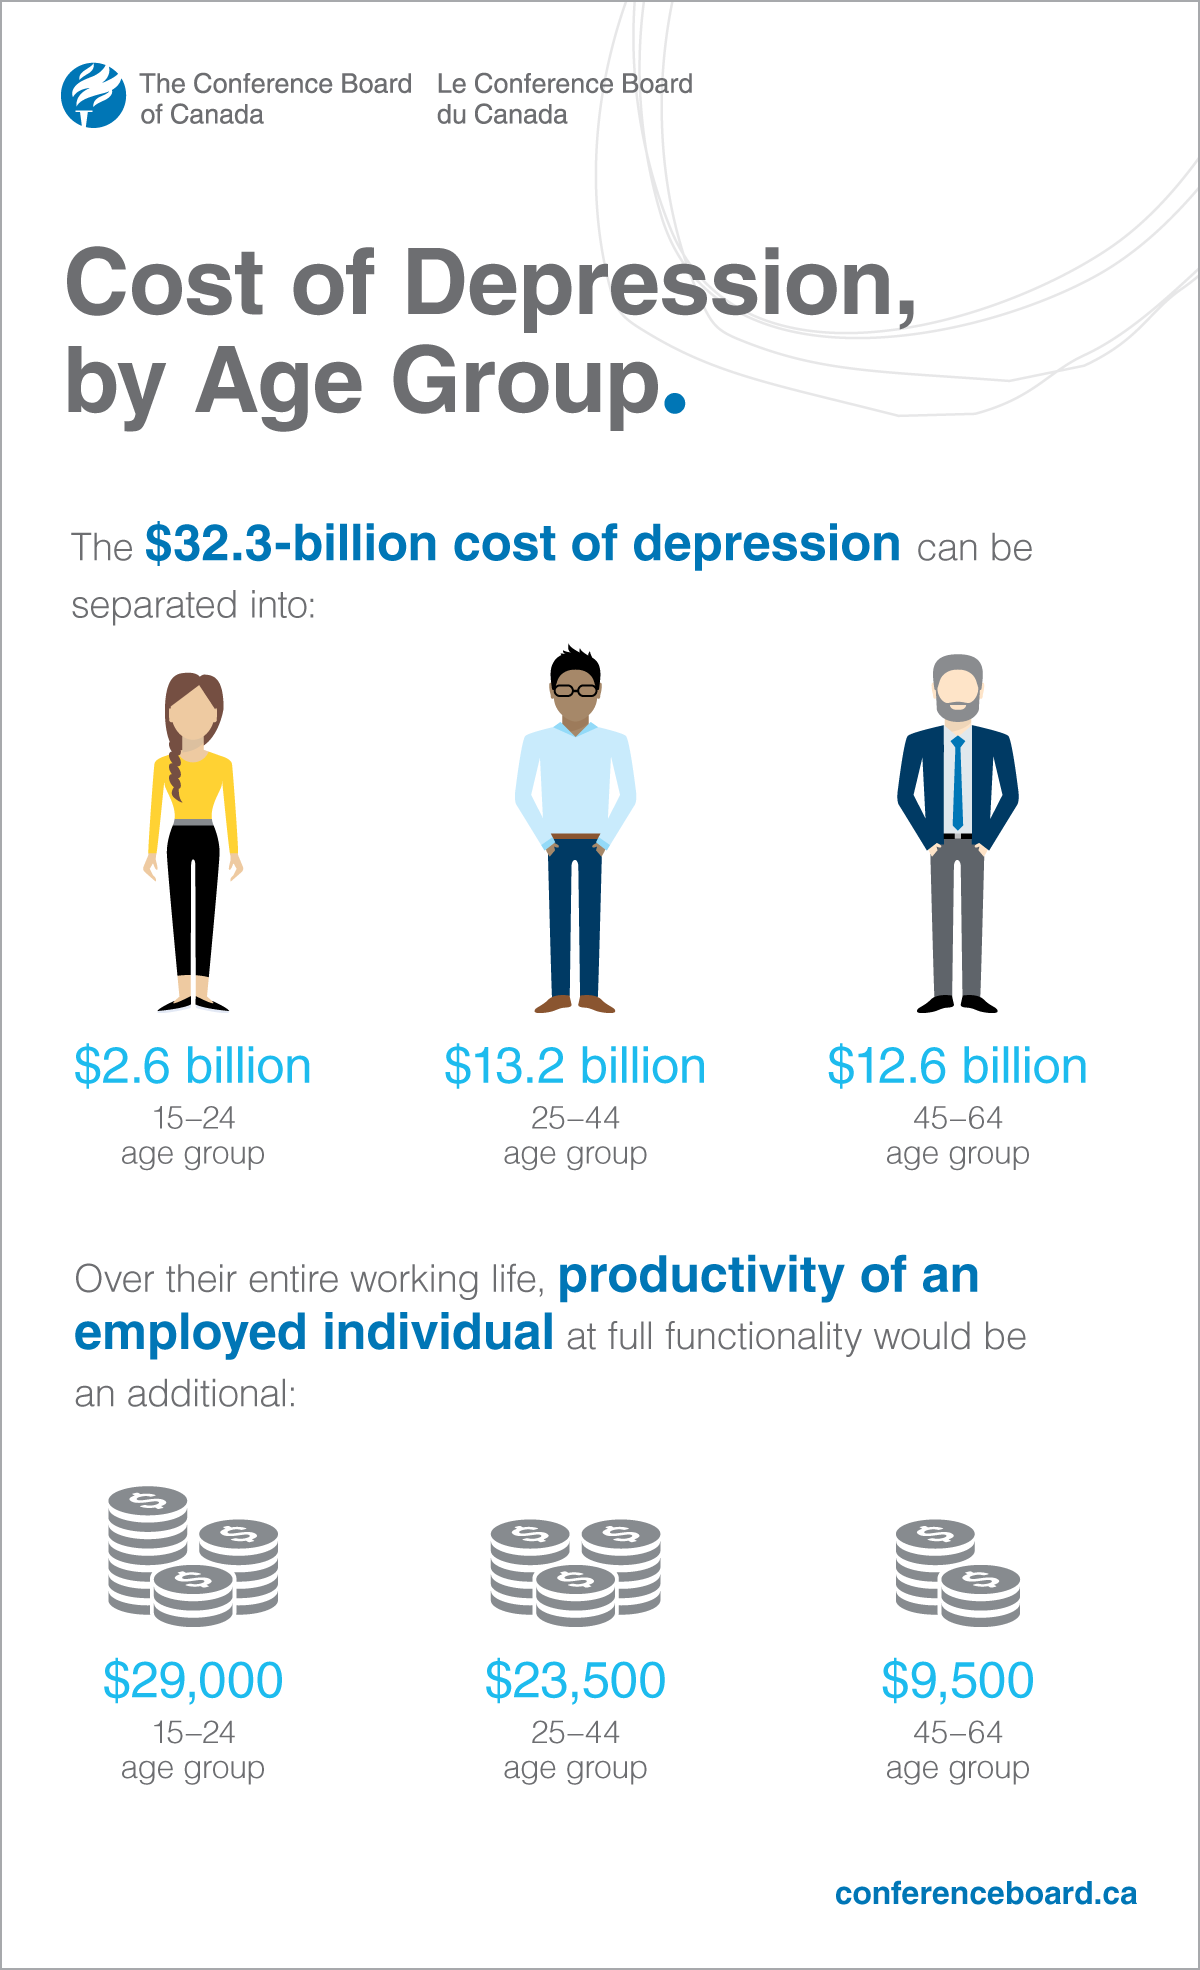 Cost of Depression by Age Group Infographic